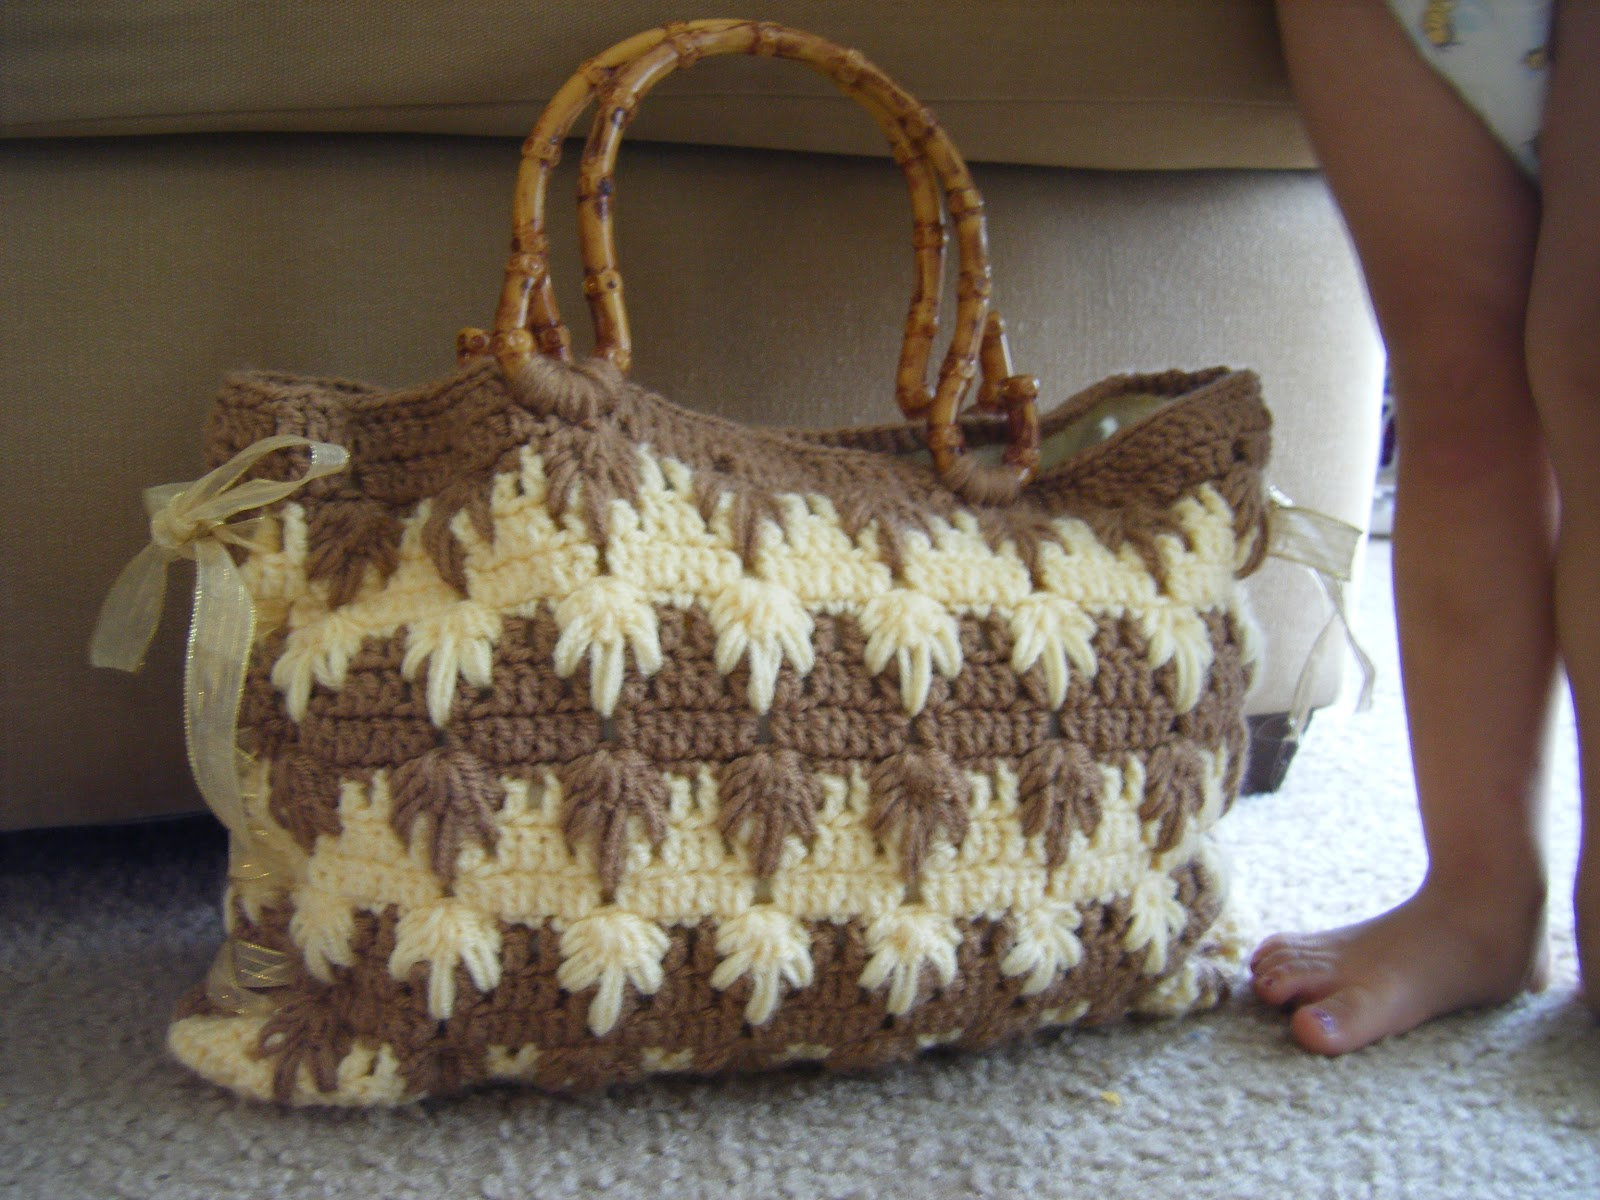 Crochet Patterns For Tote Bags : Best Patterns: Raquel Crochet Tote Bag Pattern